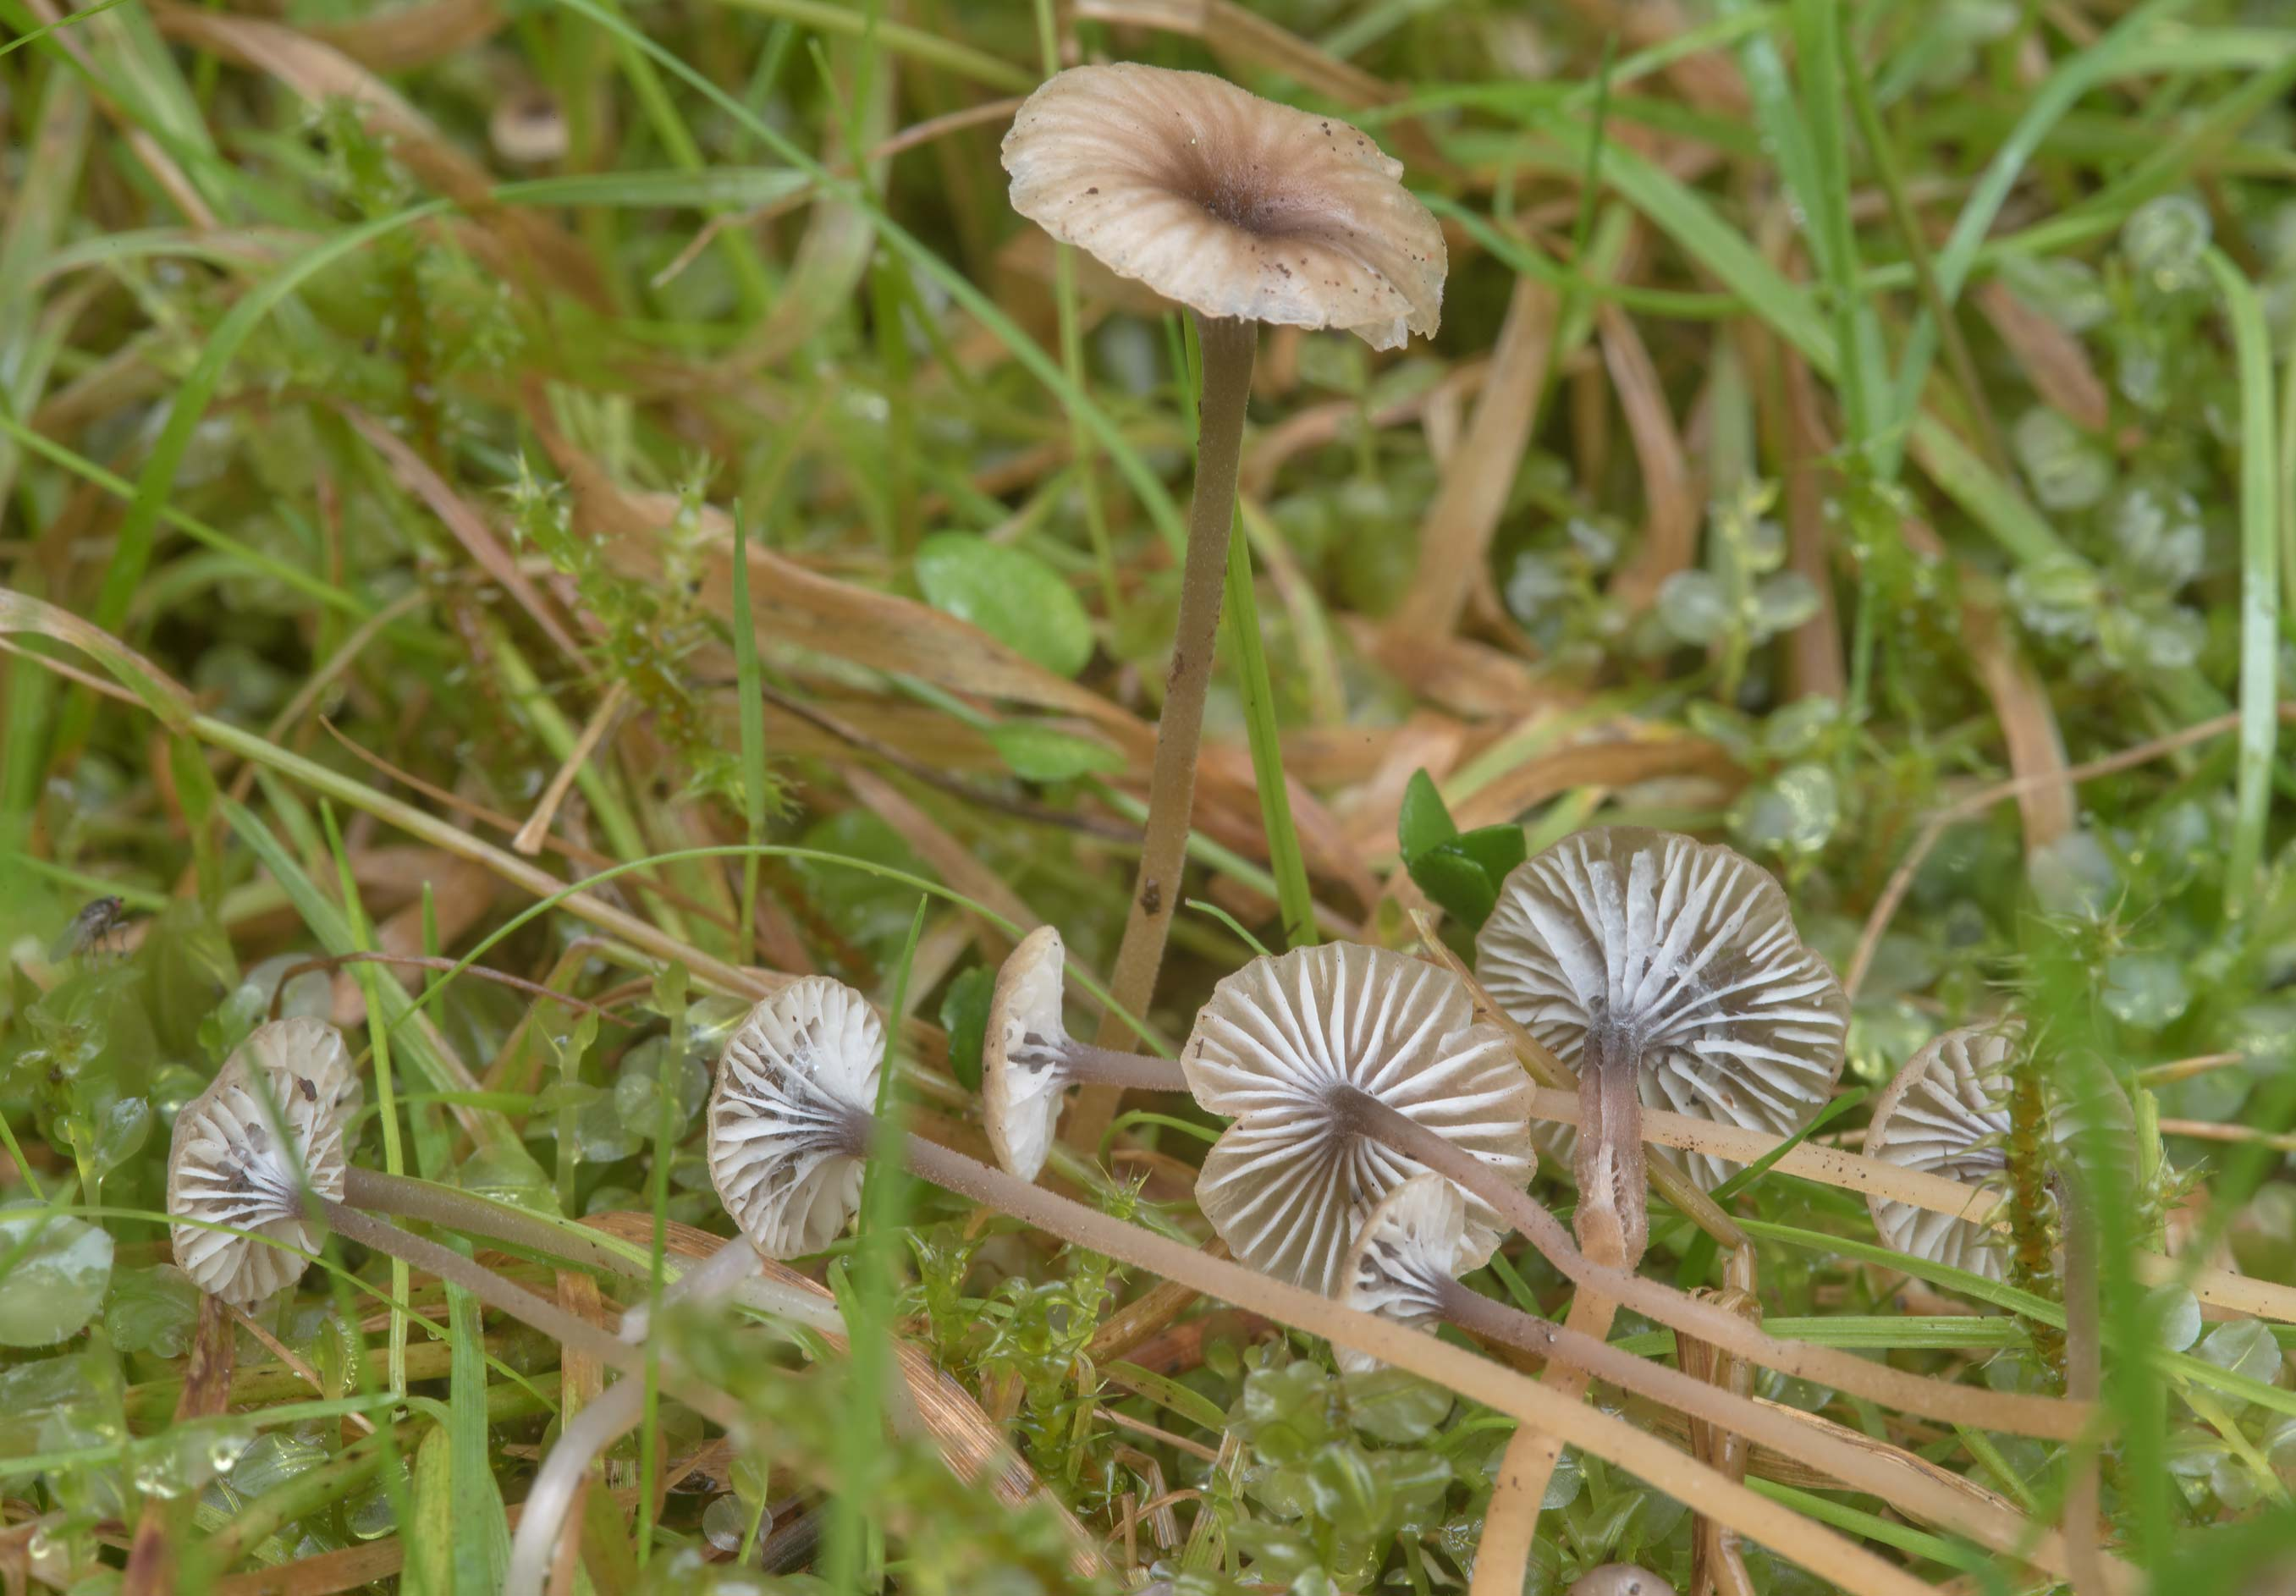 Collared mosscap mushrooms (Rickenella swartzii...miles north from St.Petersburg. Russia